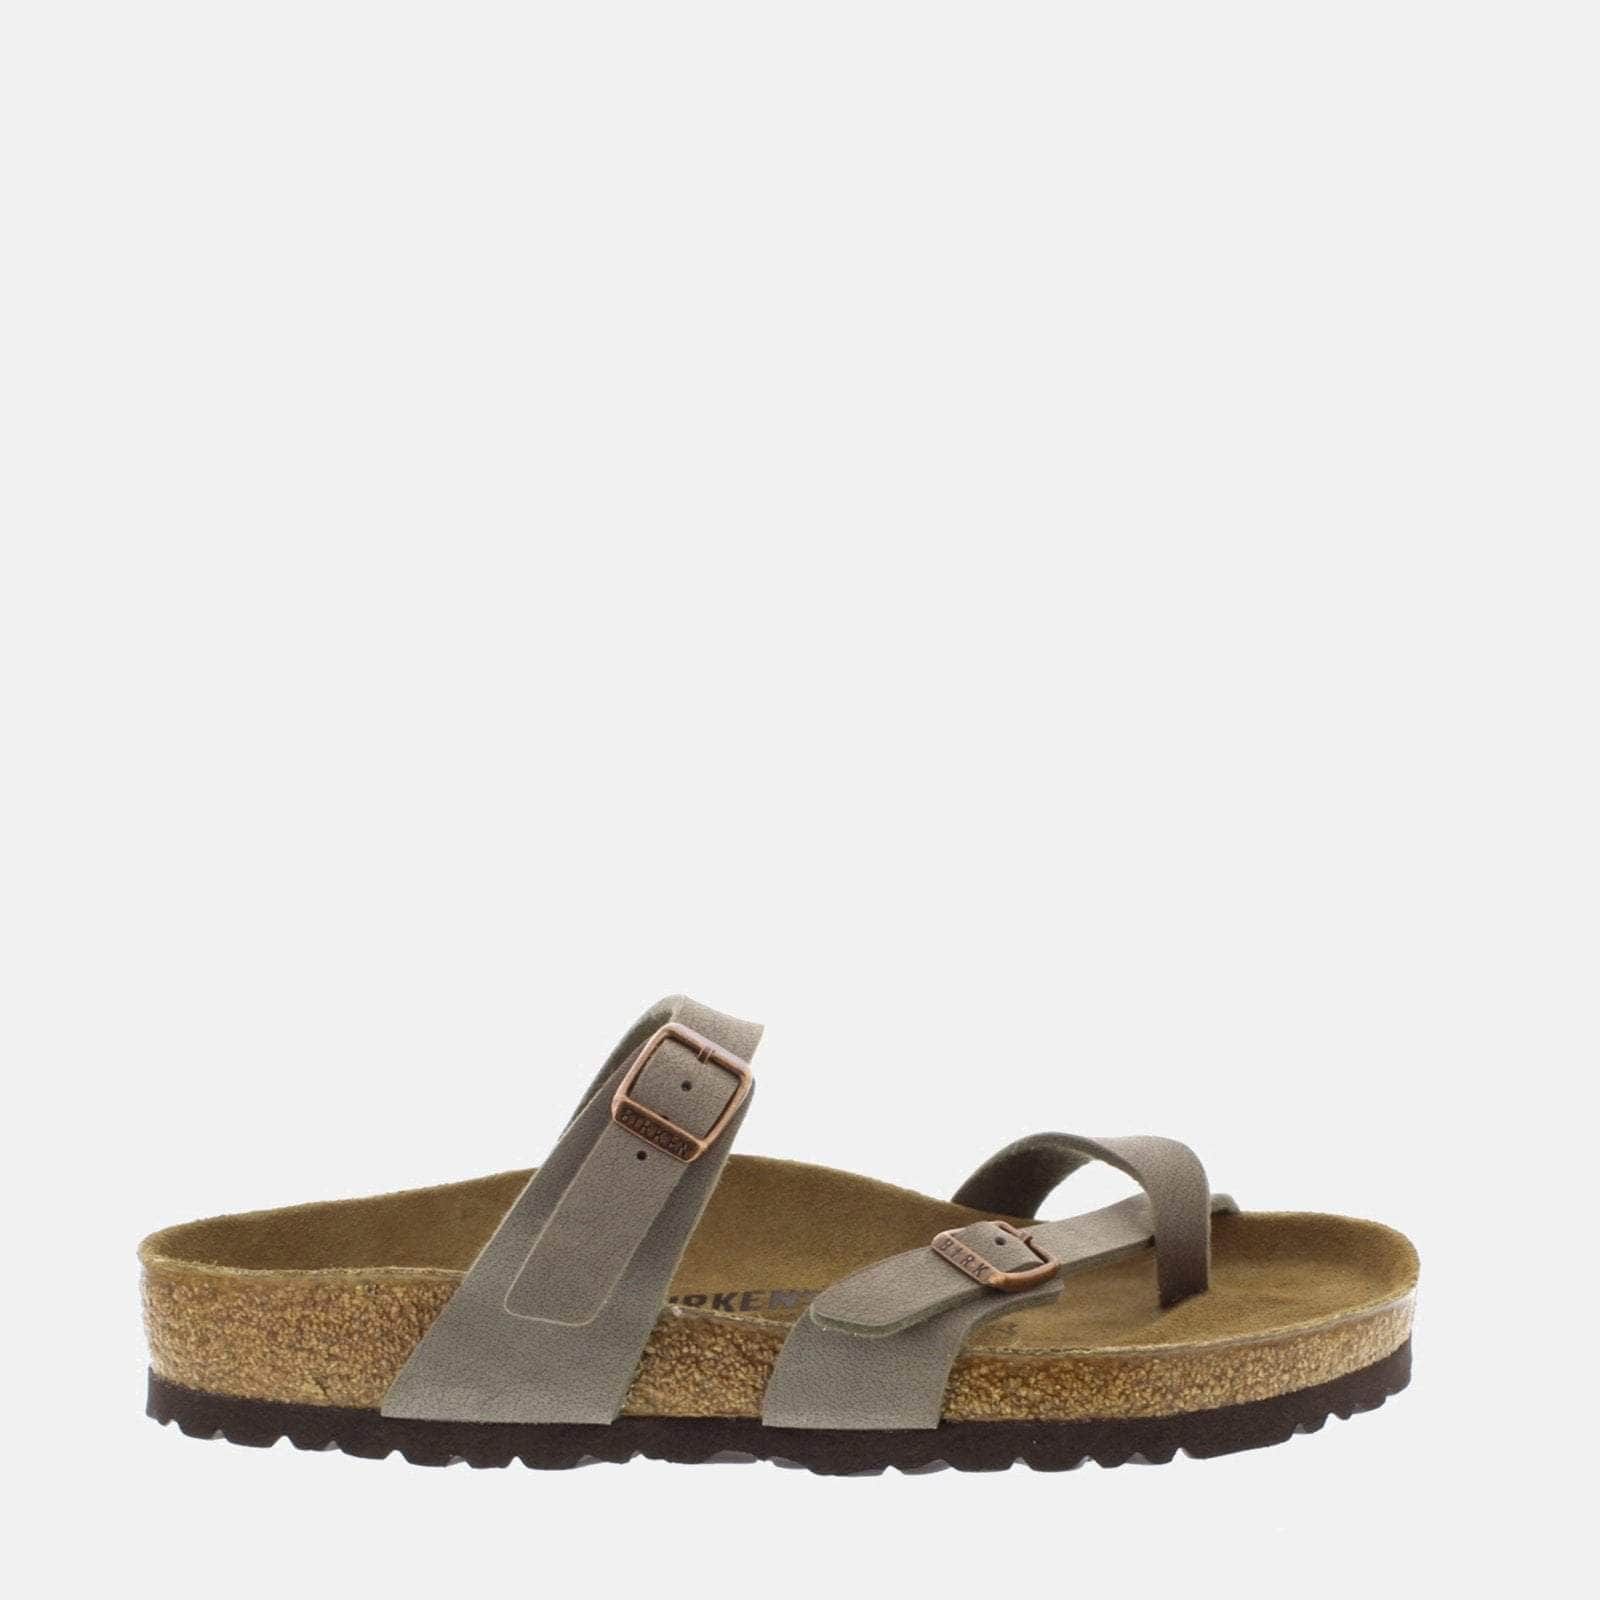 Birkenstock Footwear Mayari Regular Fit Stone 071071